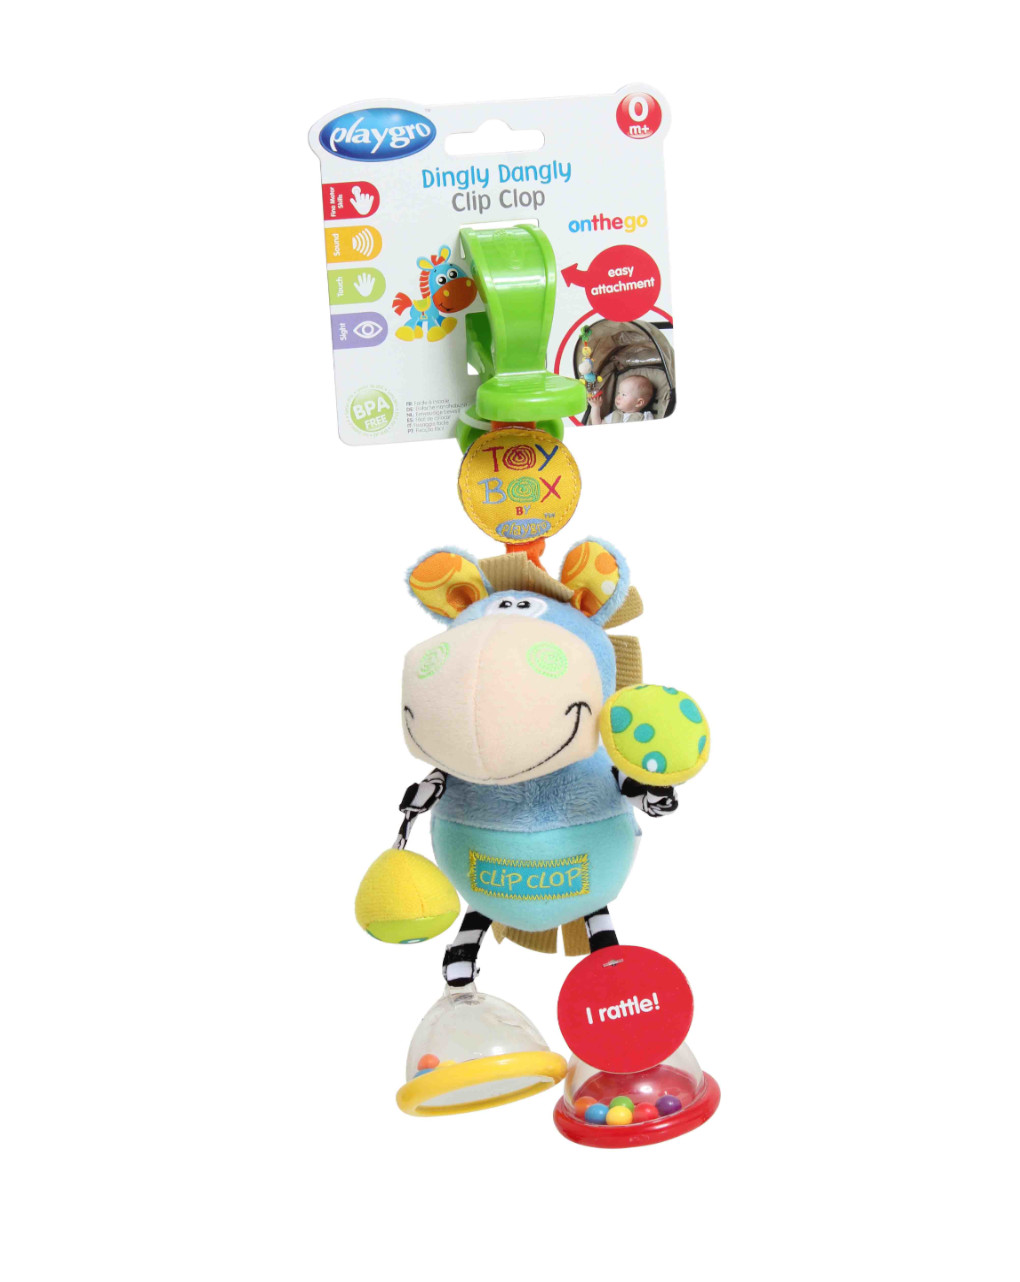 Playgro - toy box dingly dangly clip clop (small header card) - Playgro